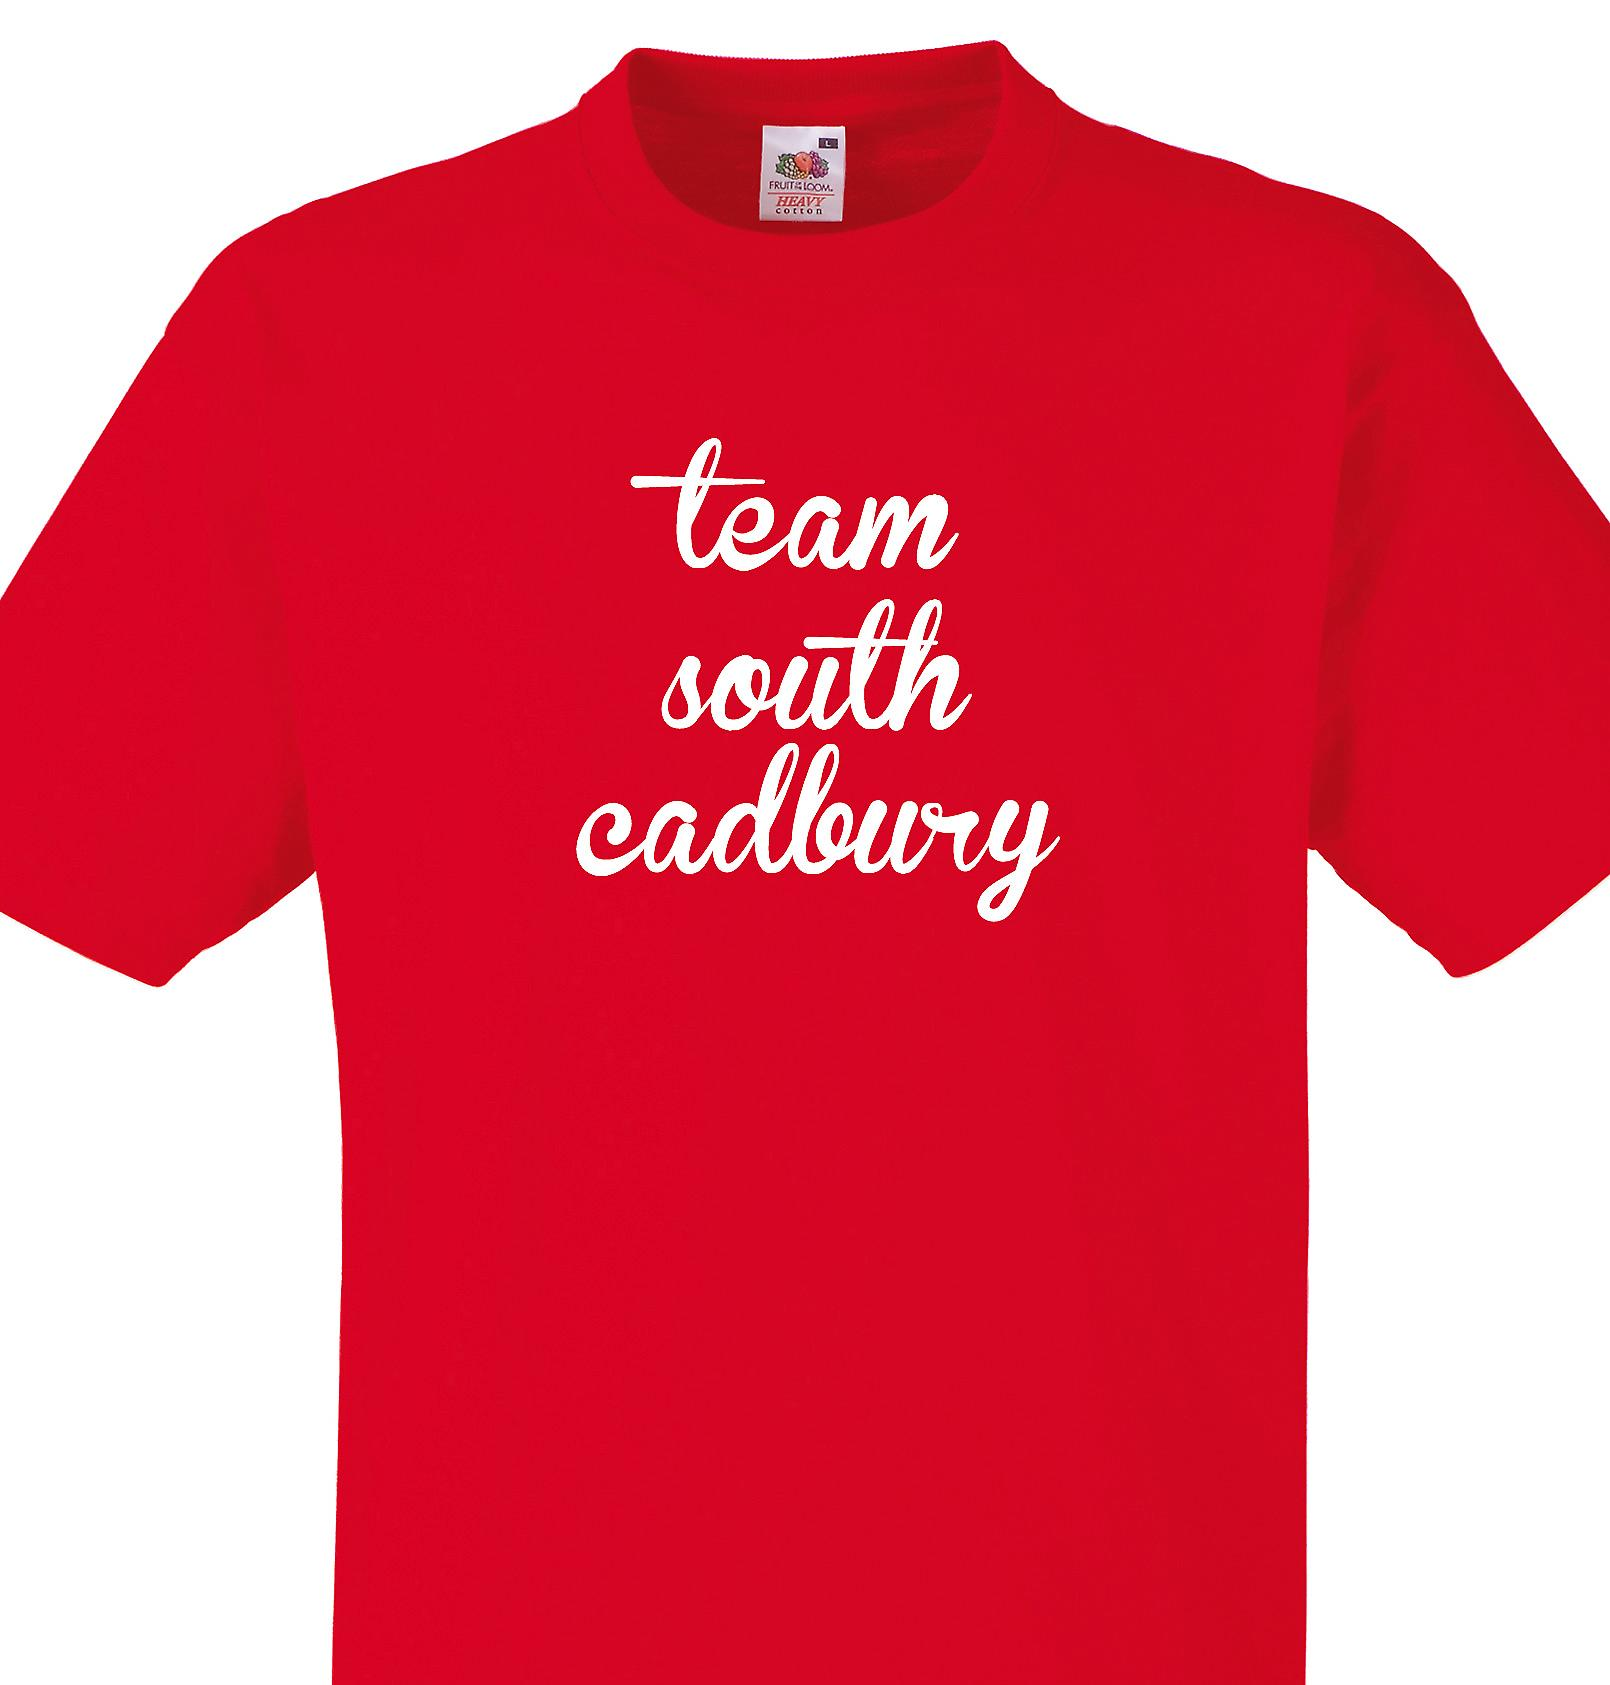 Team South cadbury Red T shirt